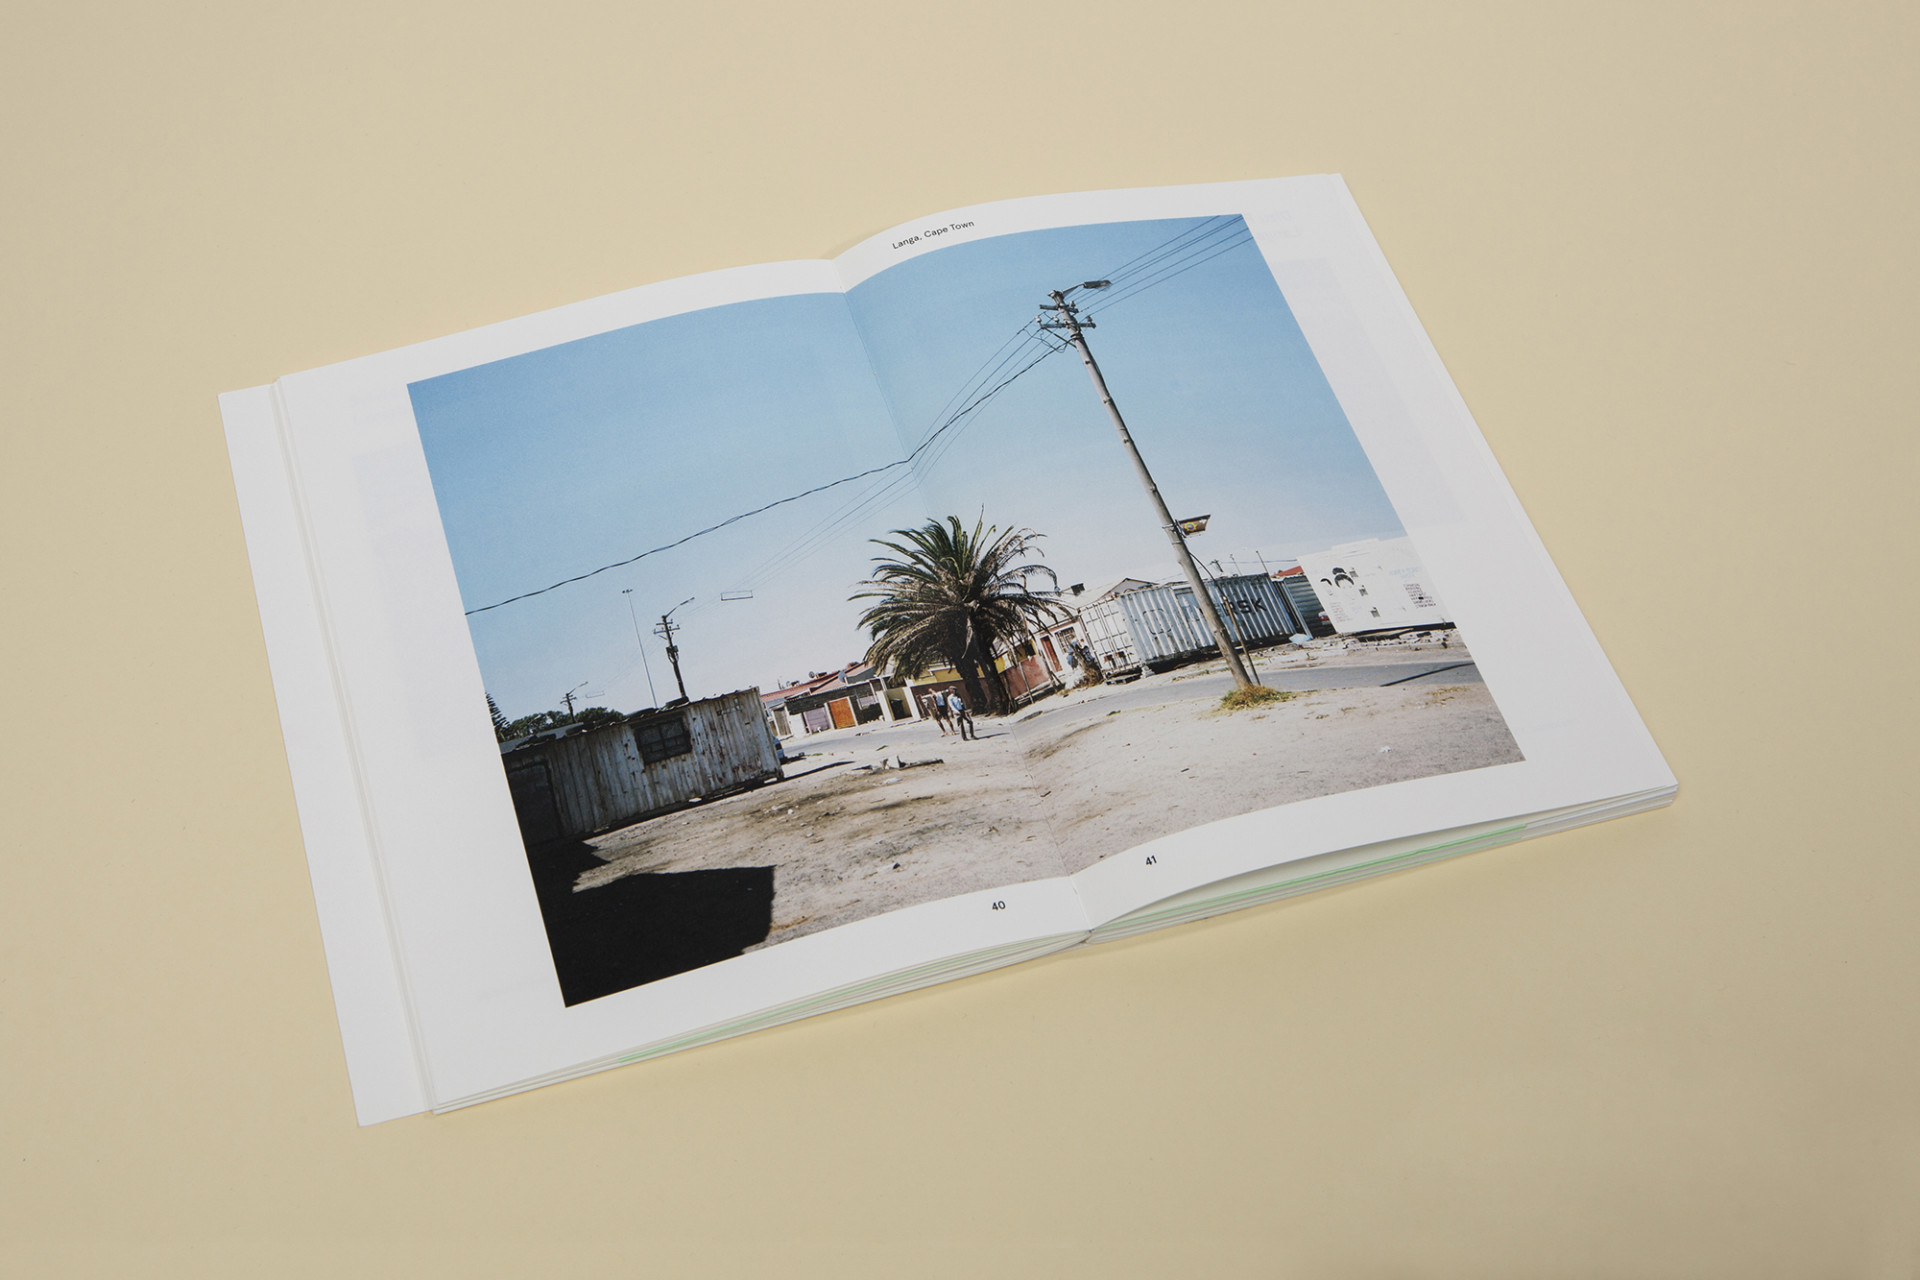 Peggy Seelenmeyer Photo Book — Franziska Lentes